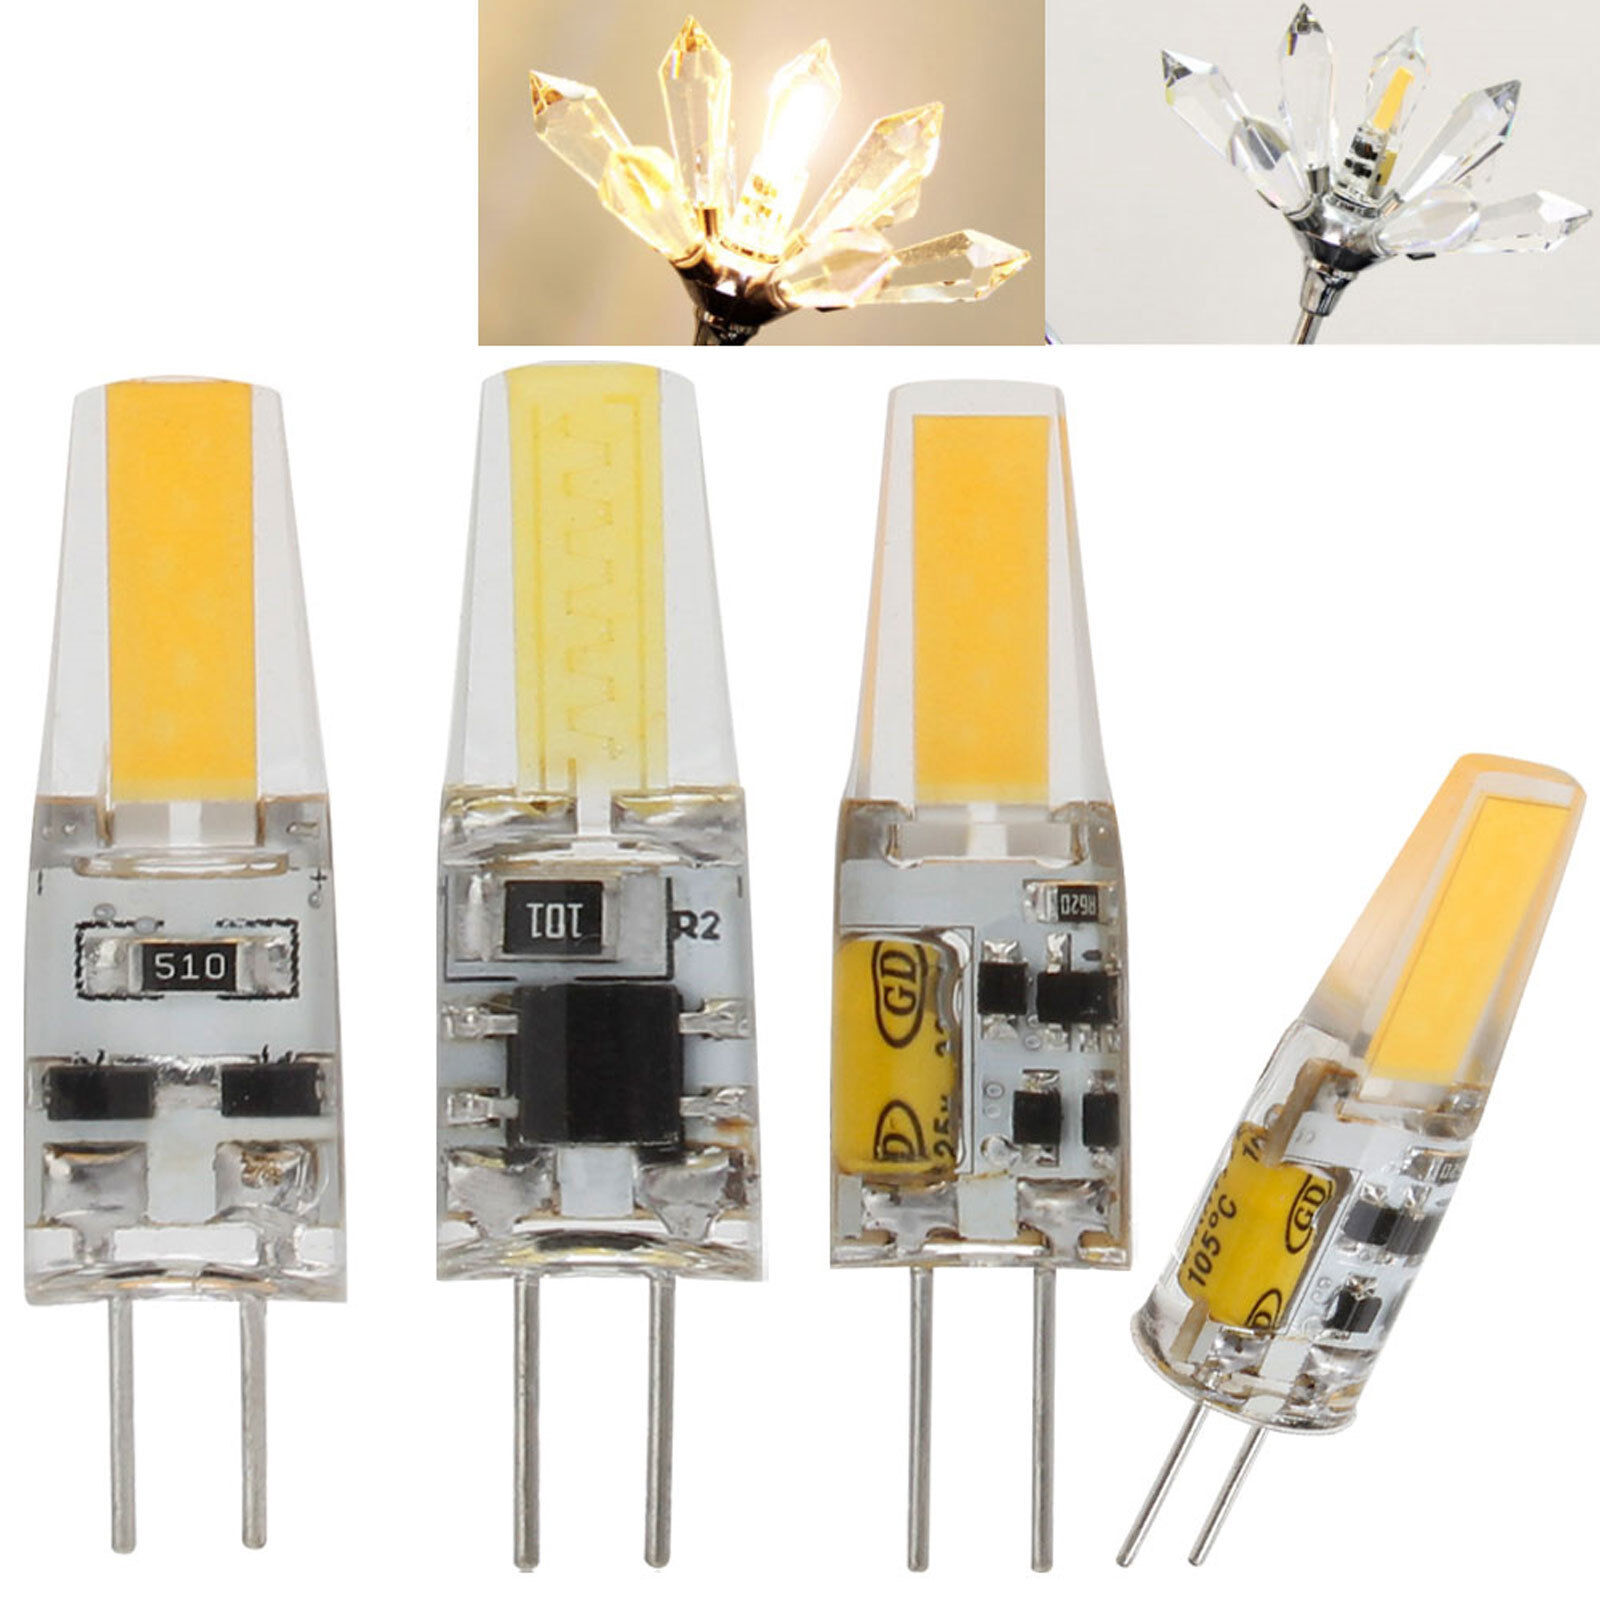 G4 LED COB Bulb AC DC 12V 220V Lights Warm Cool White Led Replace 40W Halogen